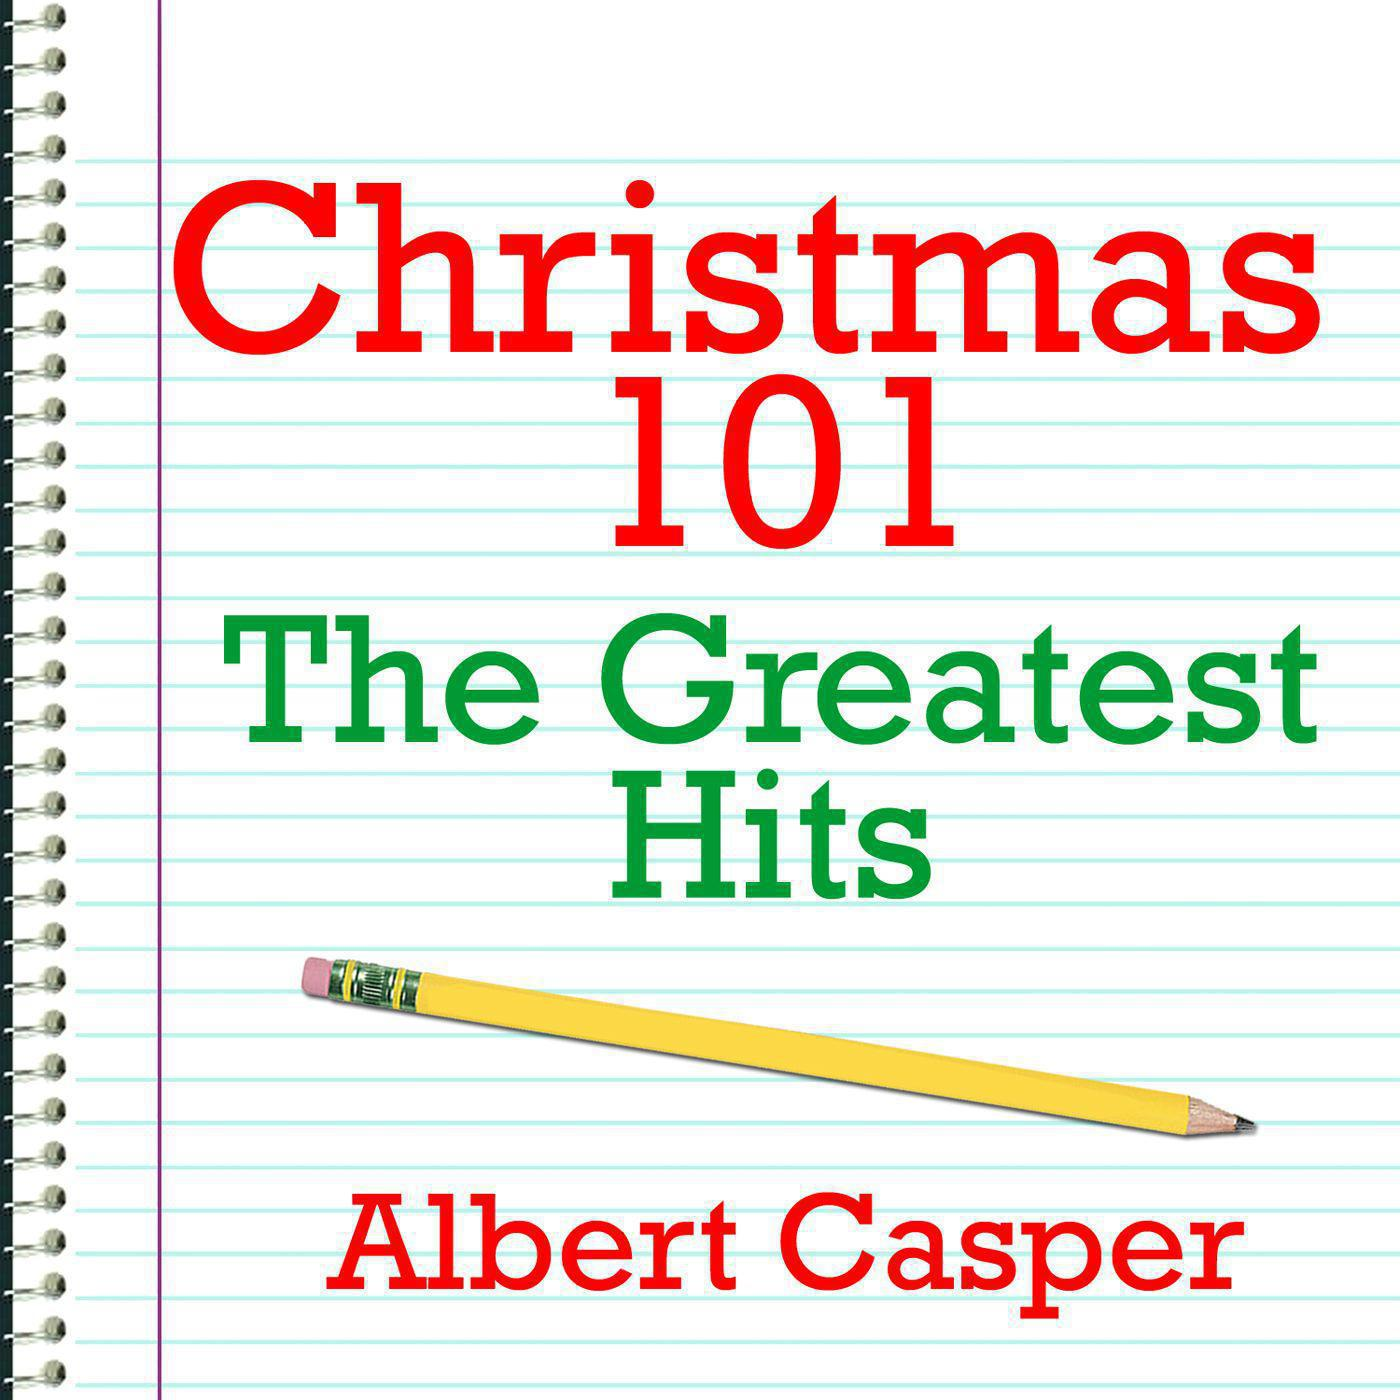 Christmas 101 - The Greatest Hits